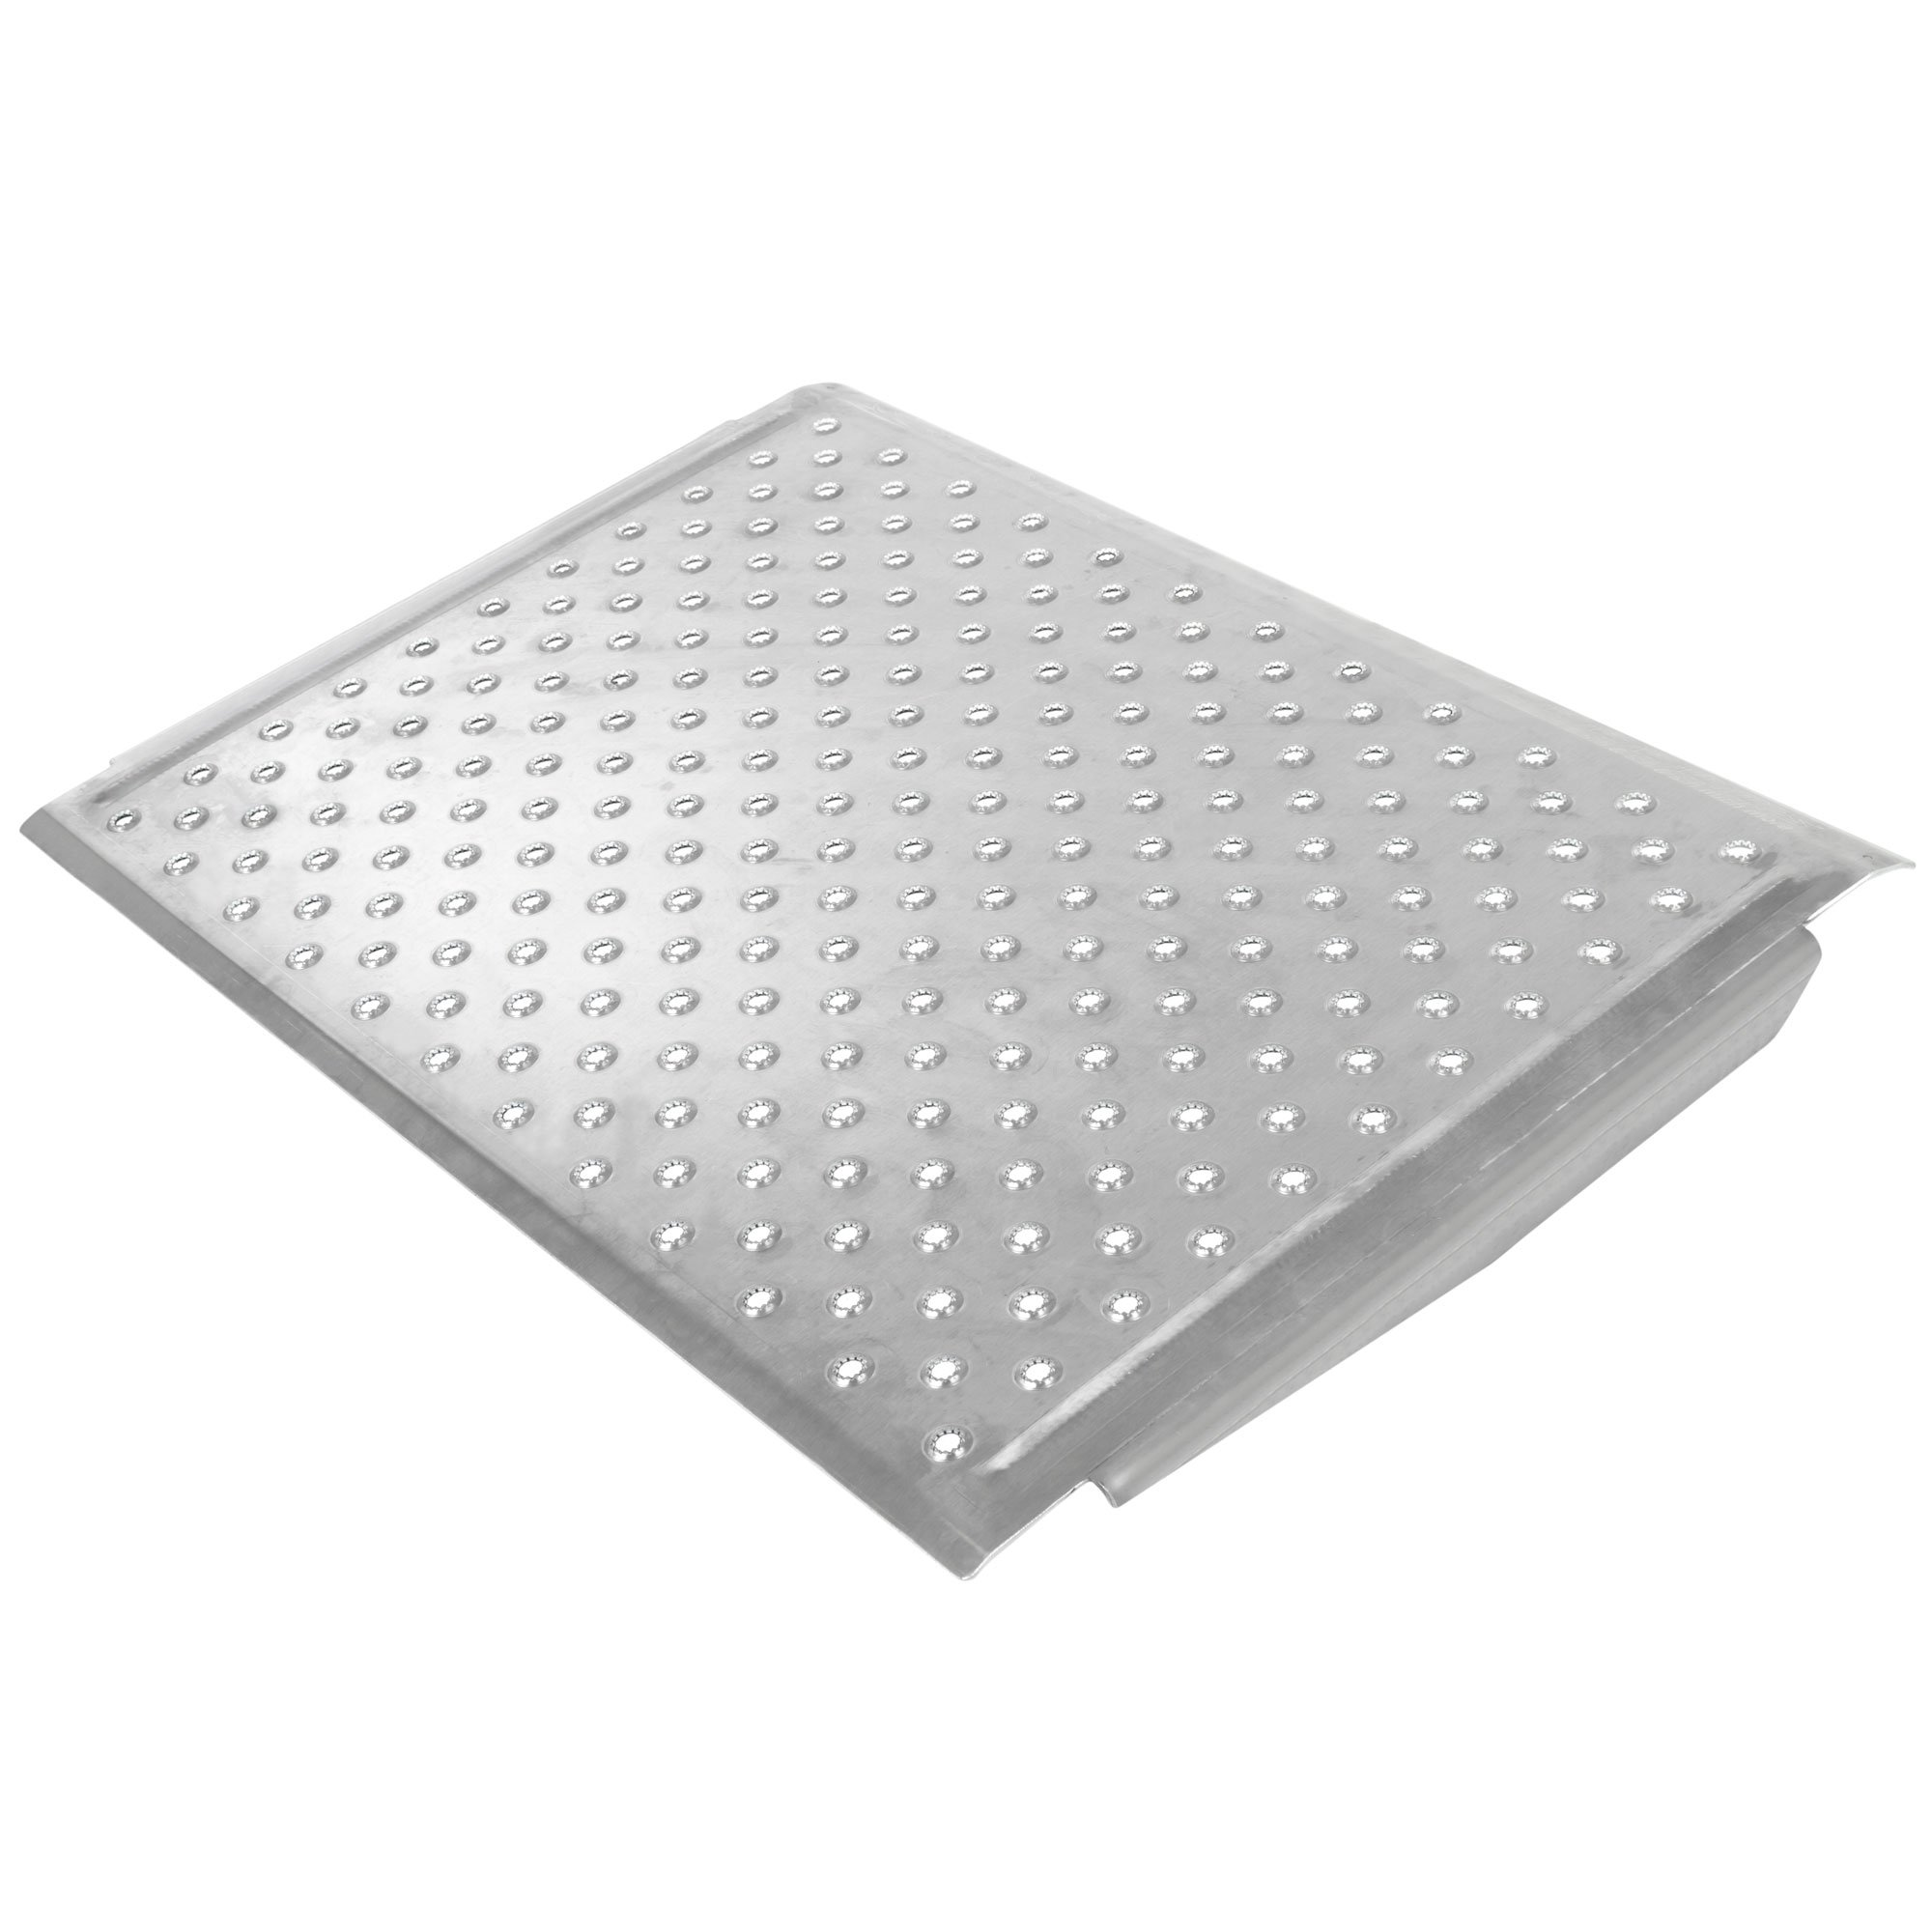 24'' x 36'' Aluminum EZ-Traction Curb Ramp by Discount Ramps